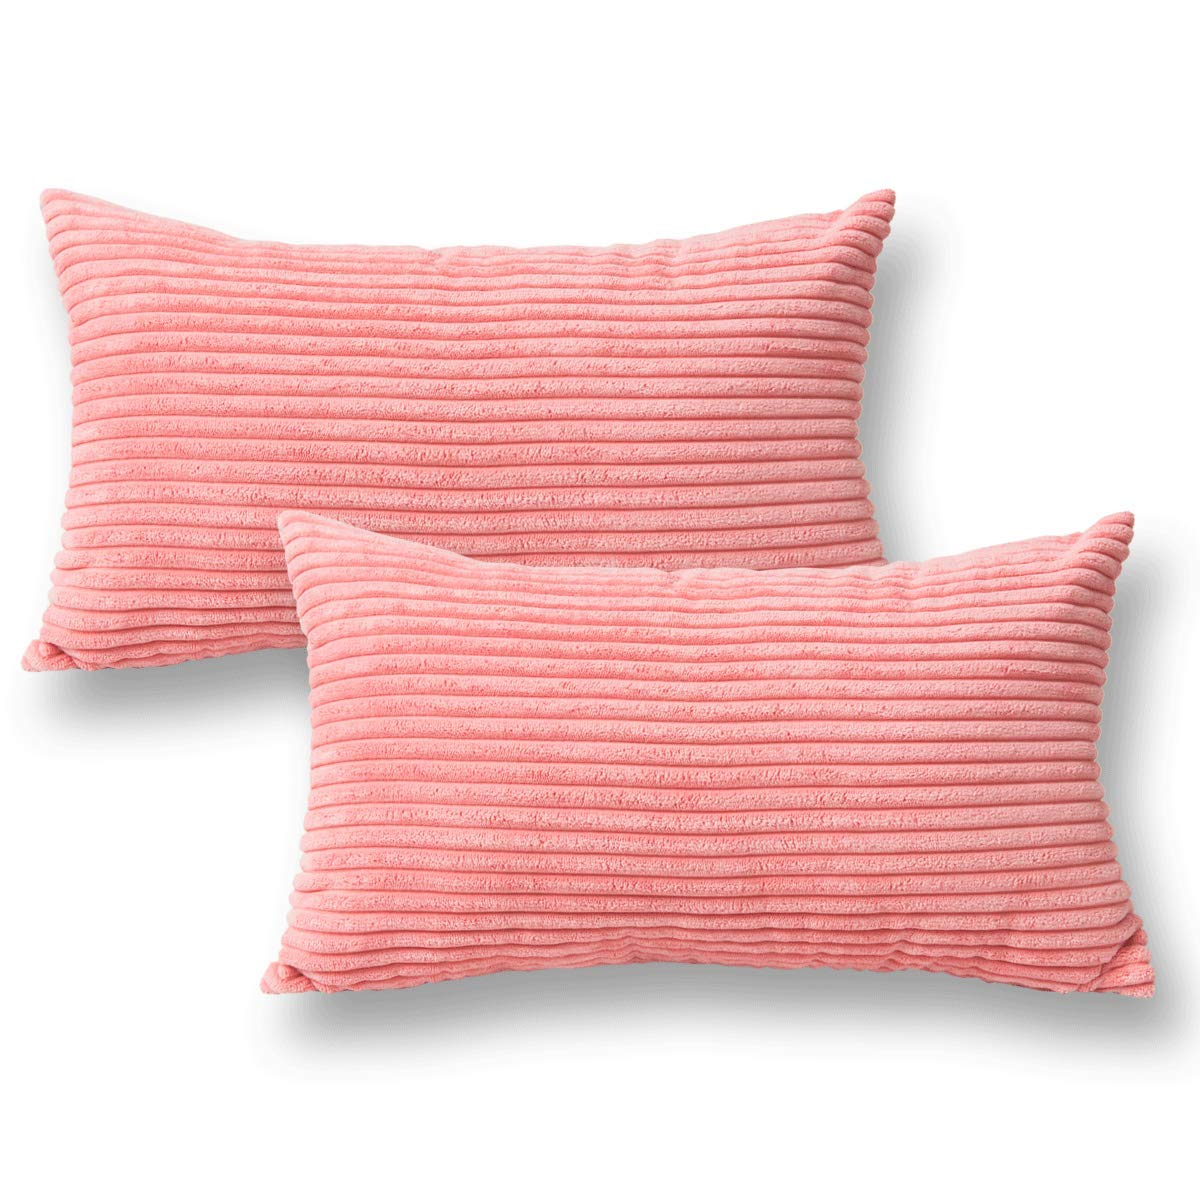 Jeanerlor 2 Pcs Corduroy Throw Pillow Cover Cushion Case from Home Decor for Toddler (Boy or Girl), 12x20 inch (30 x 50 cm), Pink